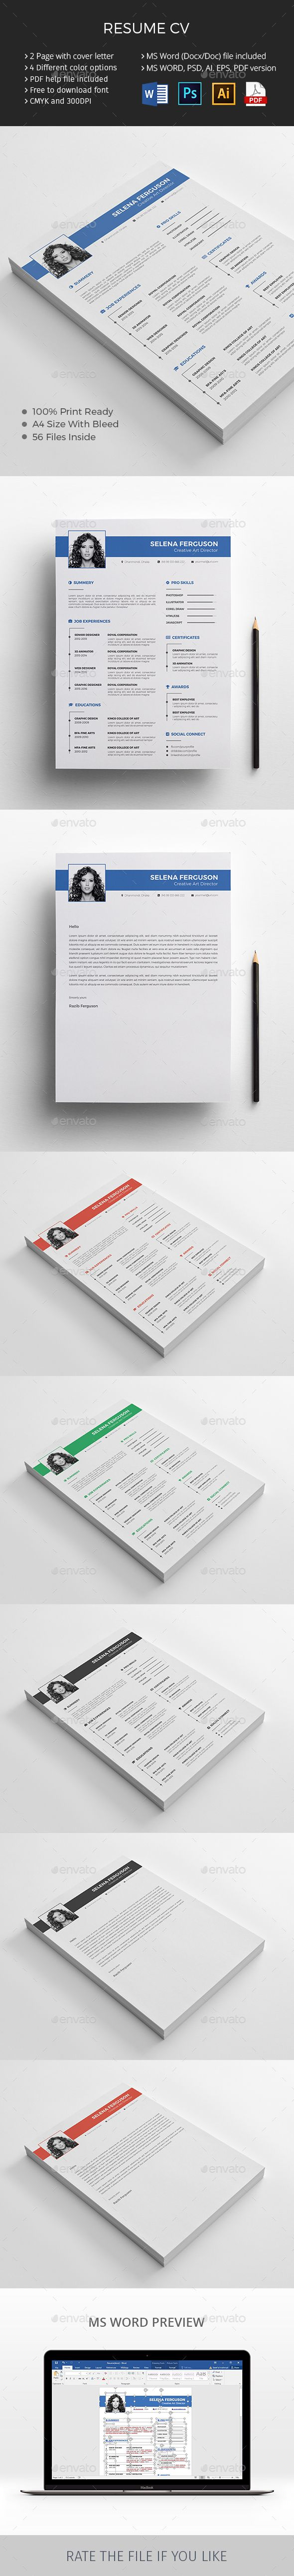 Resume CV 711 best Resumes images on